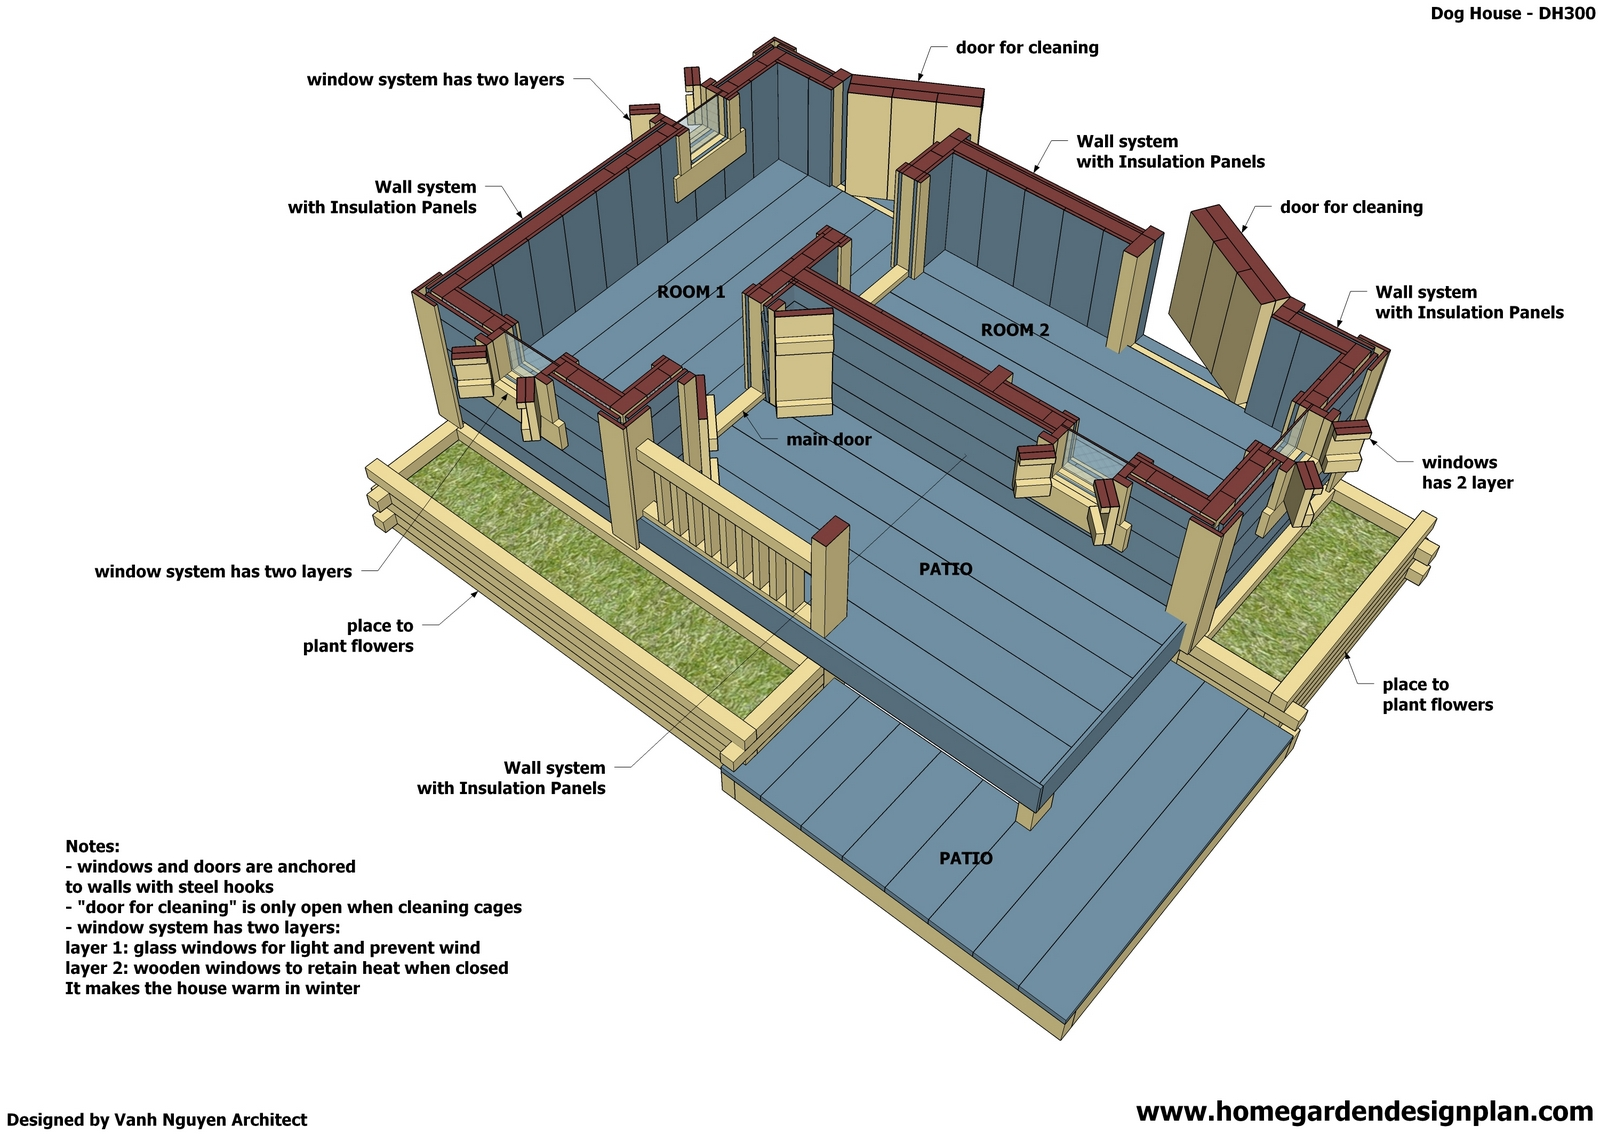 Woodwork 2 dog house plans free pdf plans Make a house blueprint online free